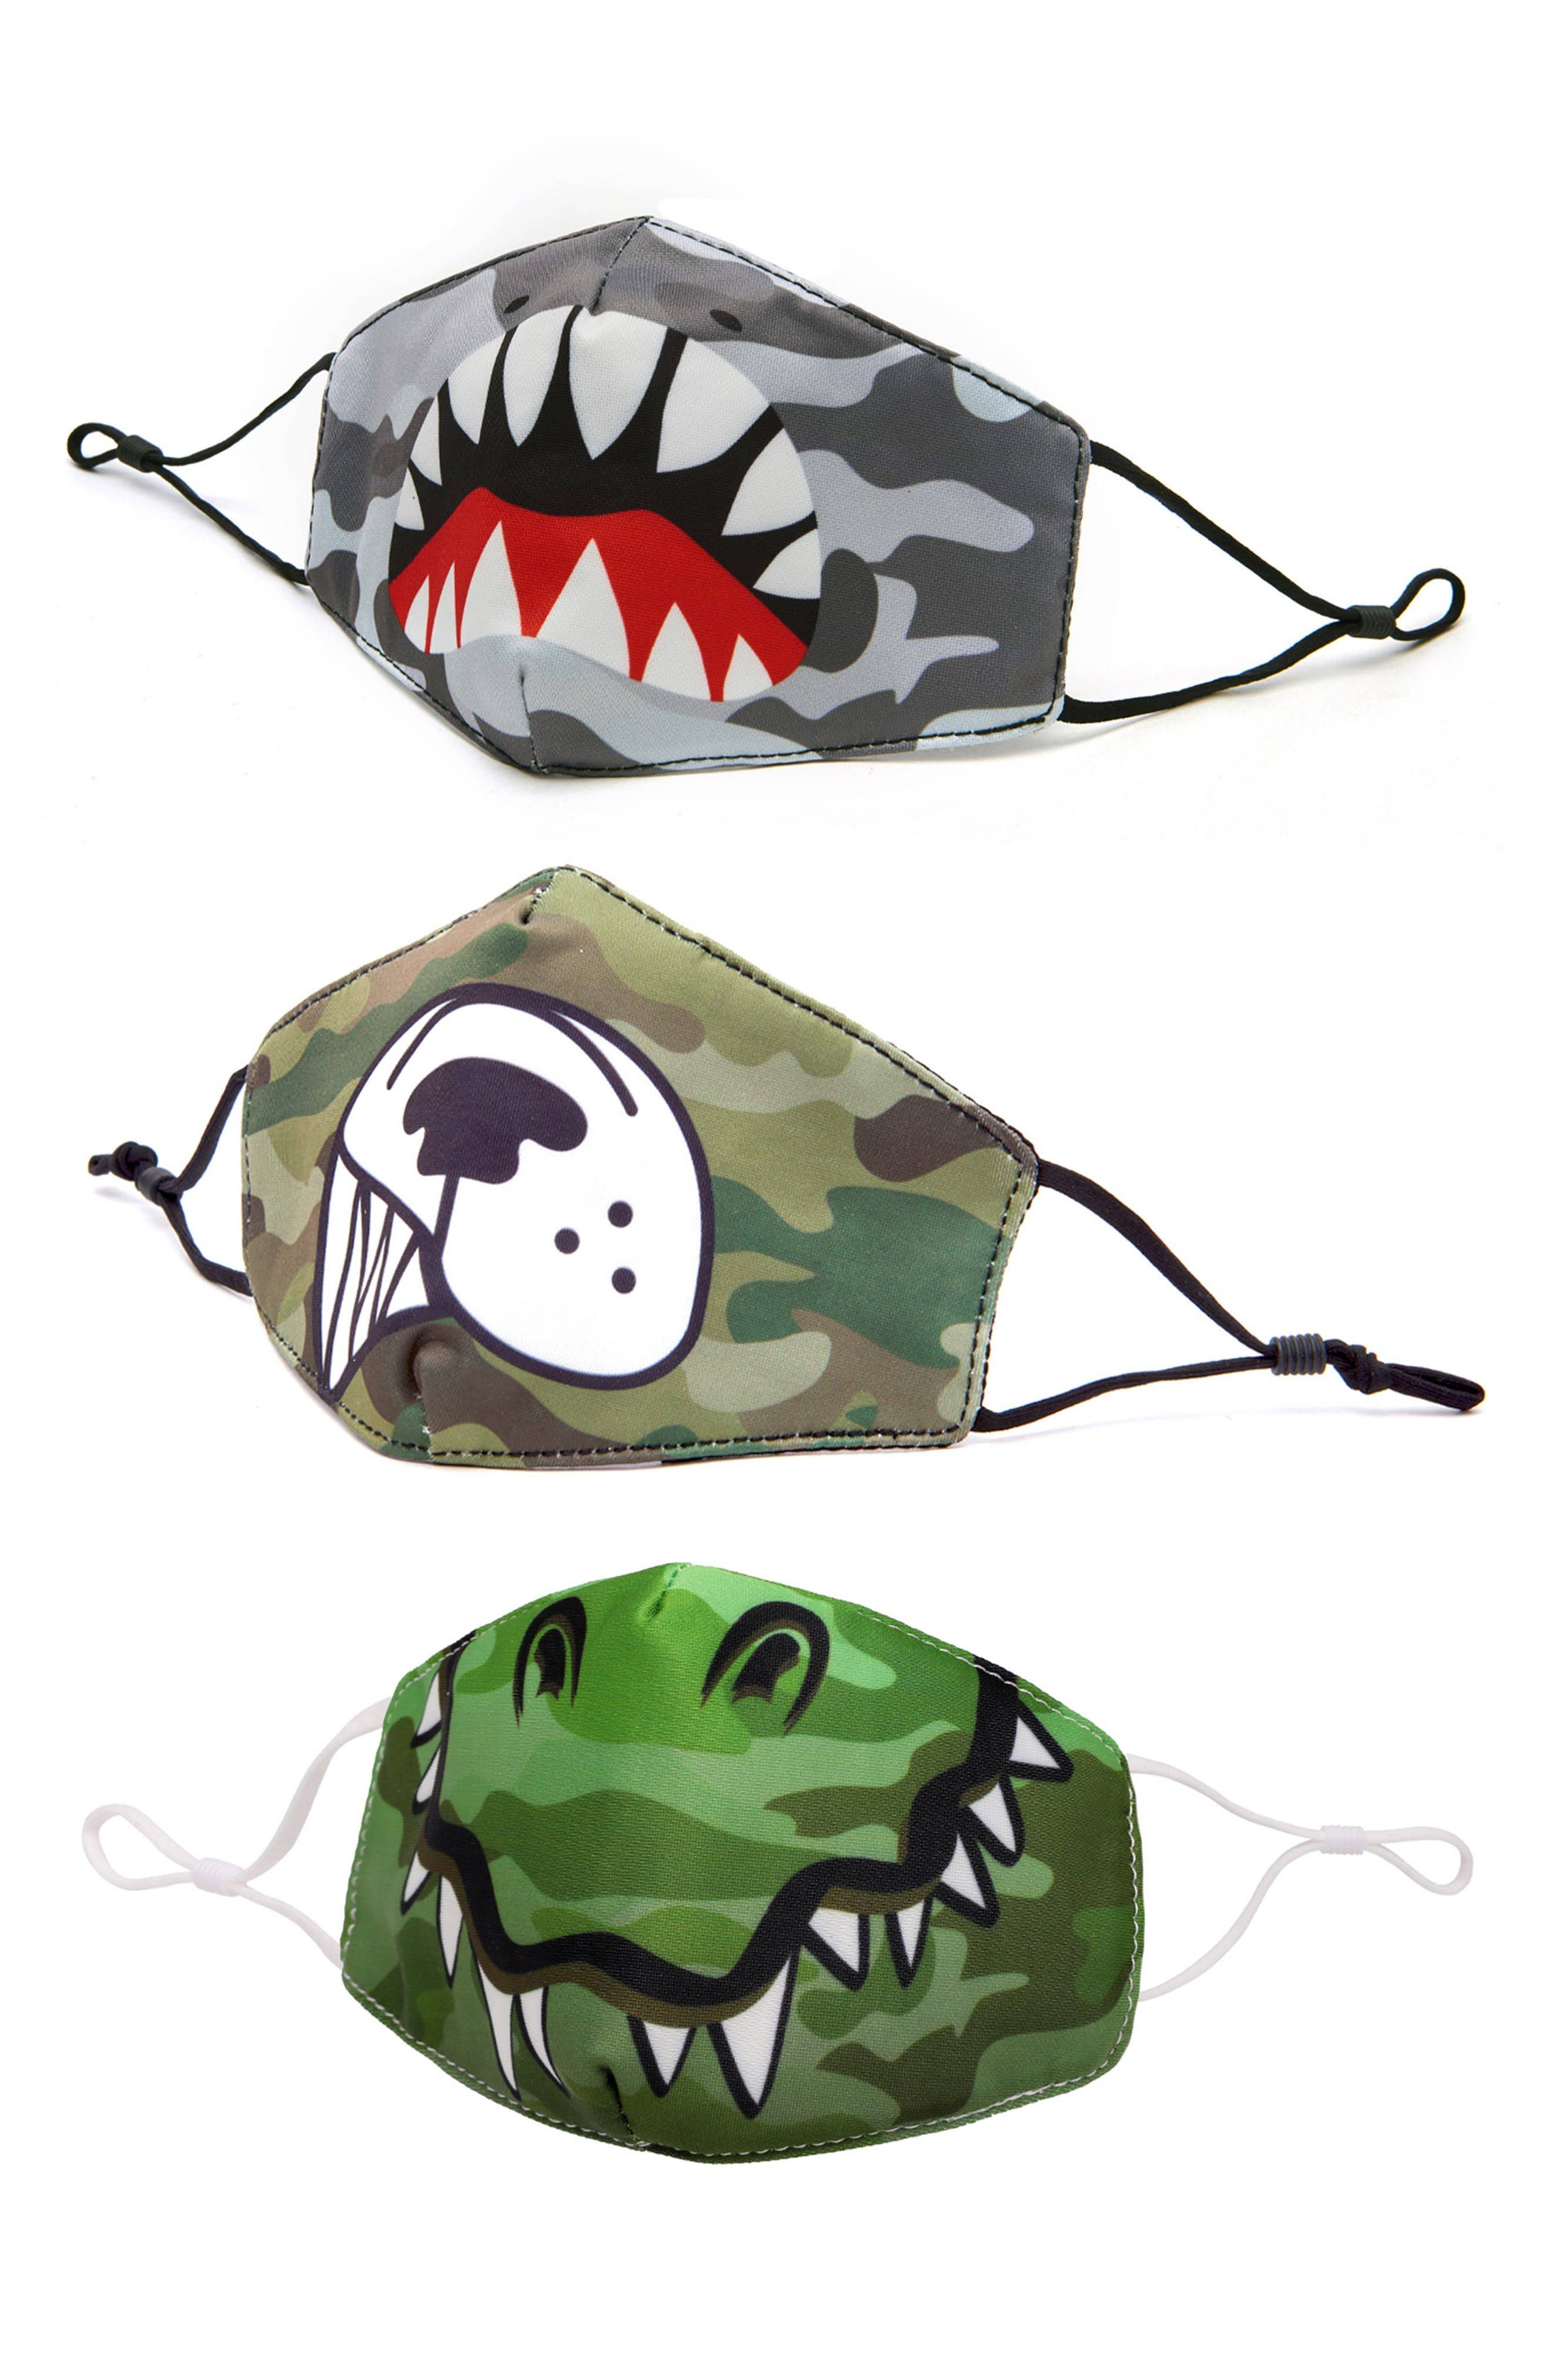 Omg Accessories Animals 3-Pack Kids' Contoured Face Masks, Size One Size - Green